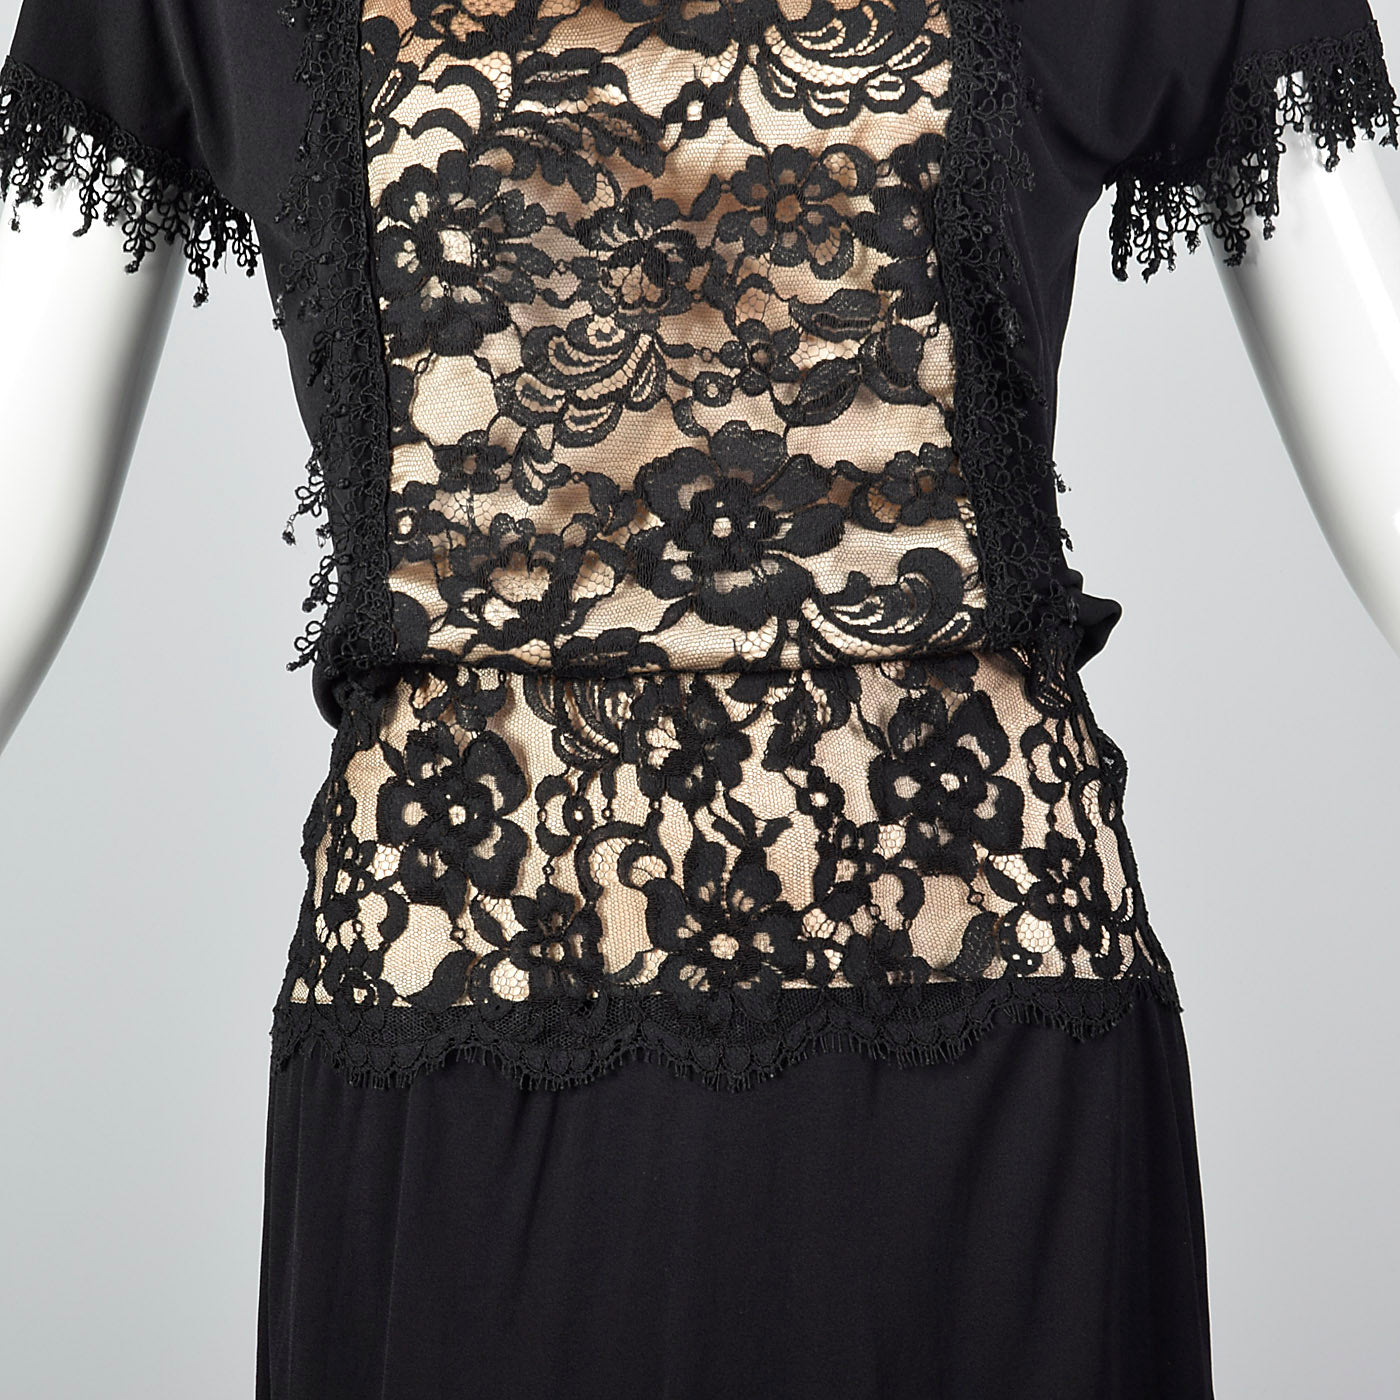 1980s Black Dress with Illusion Lace